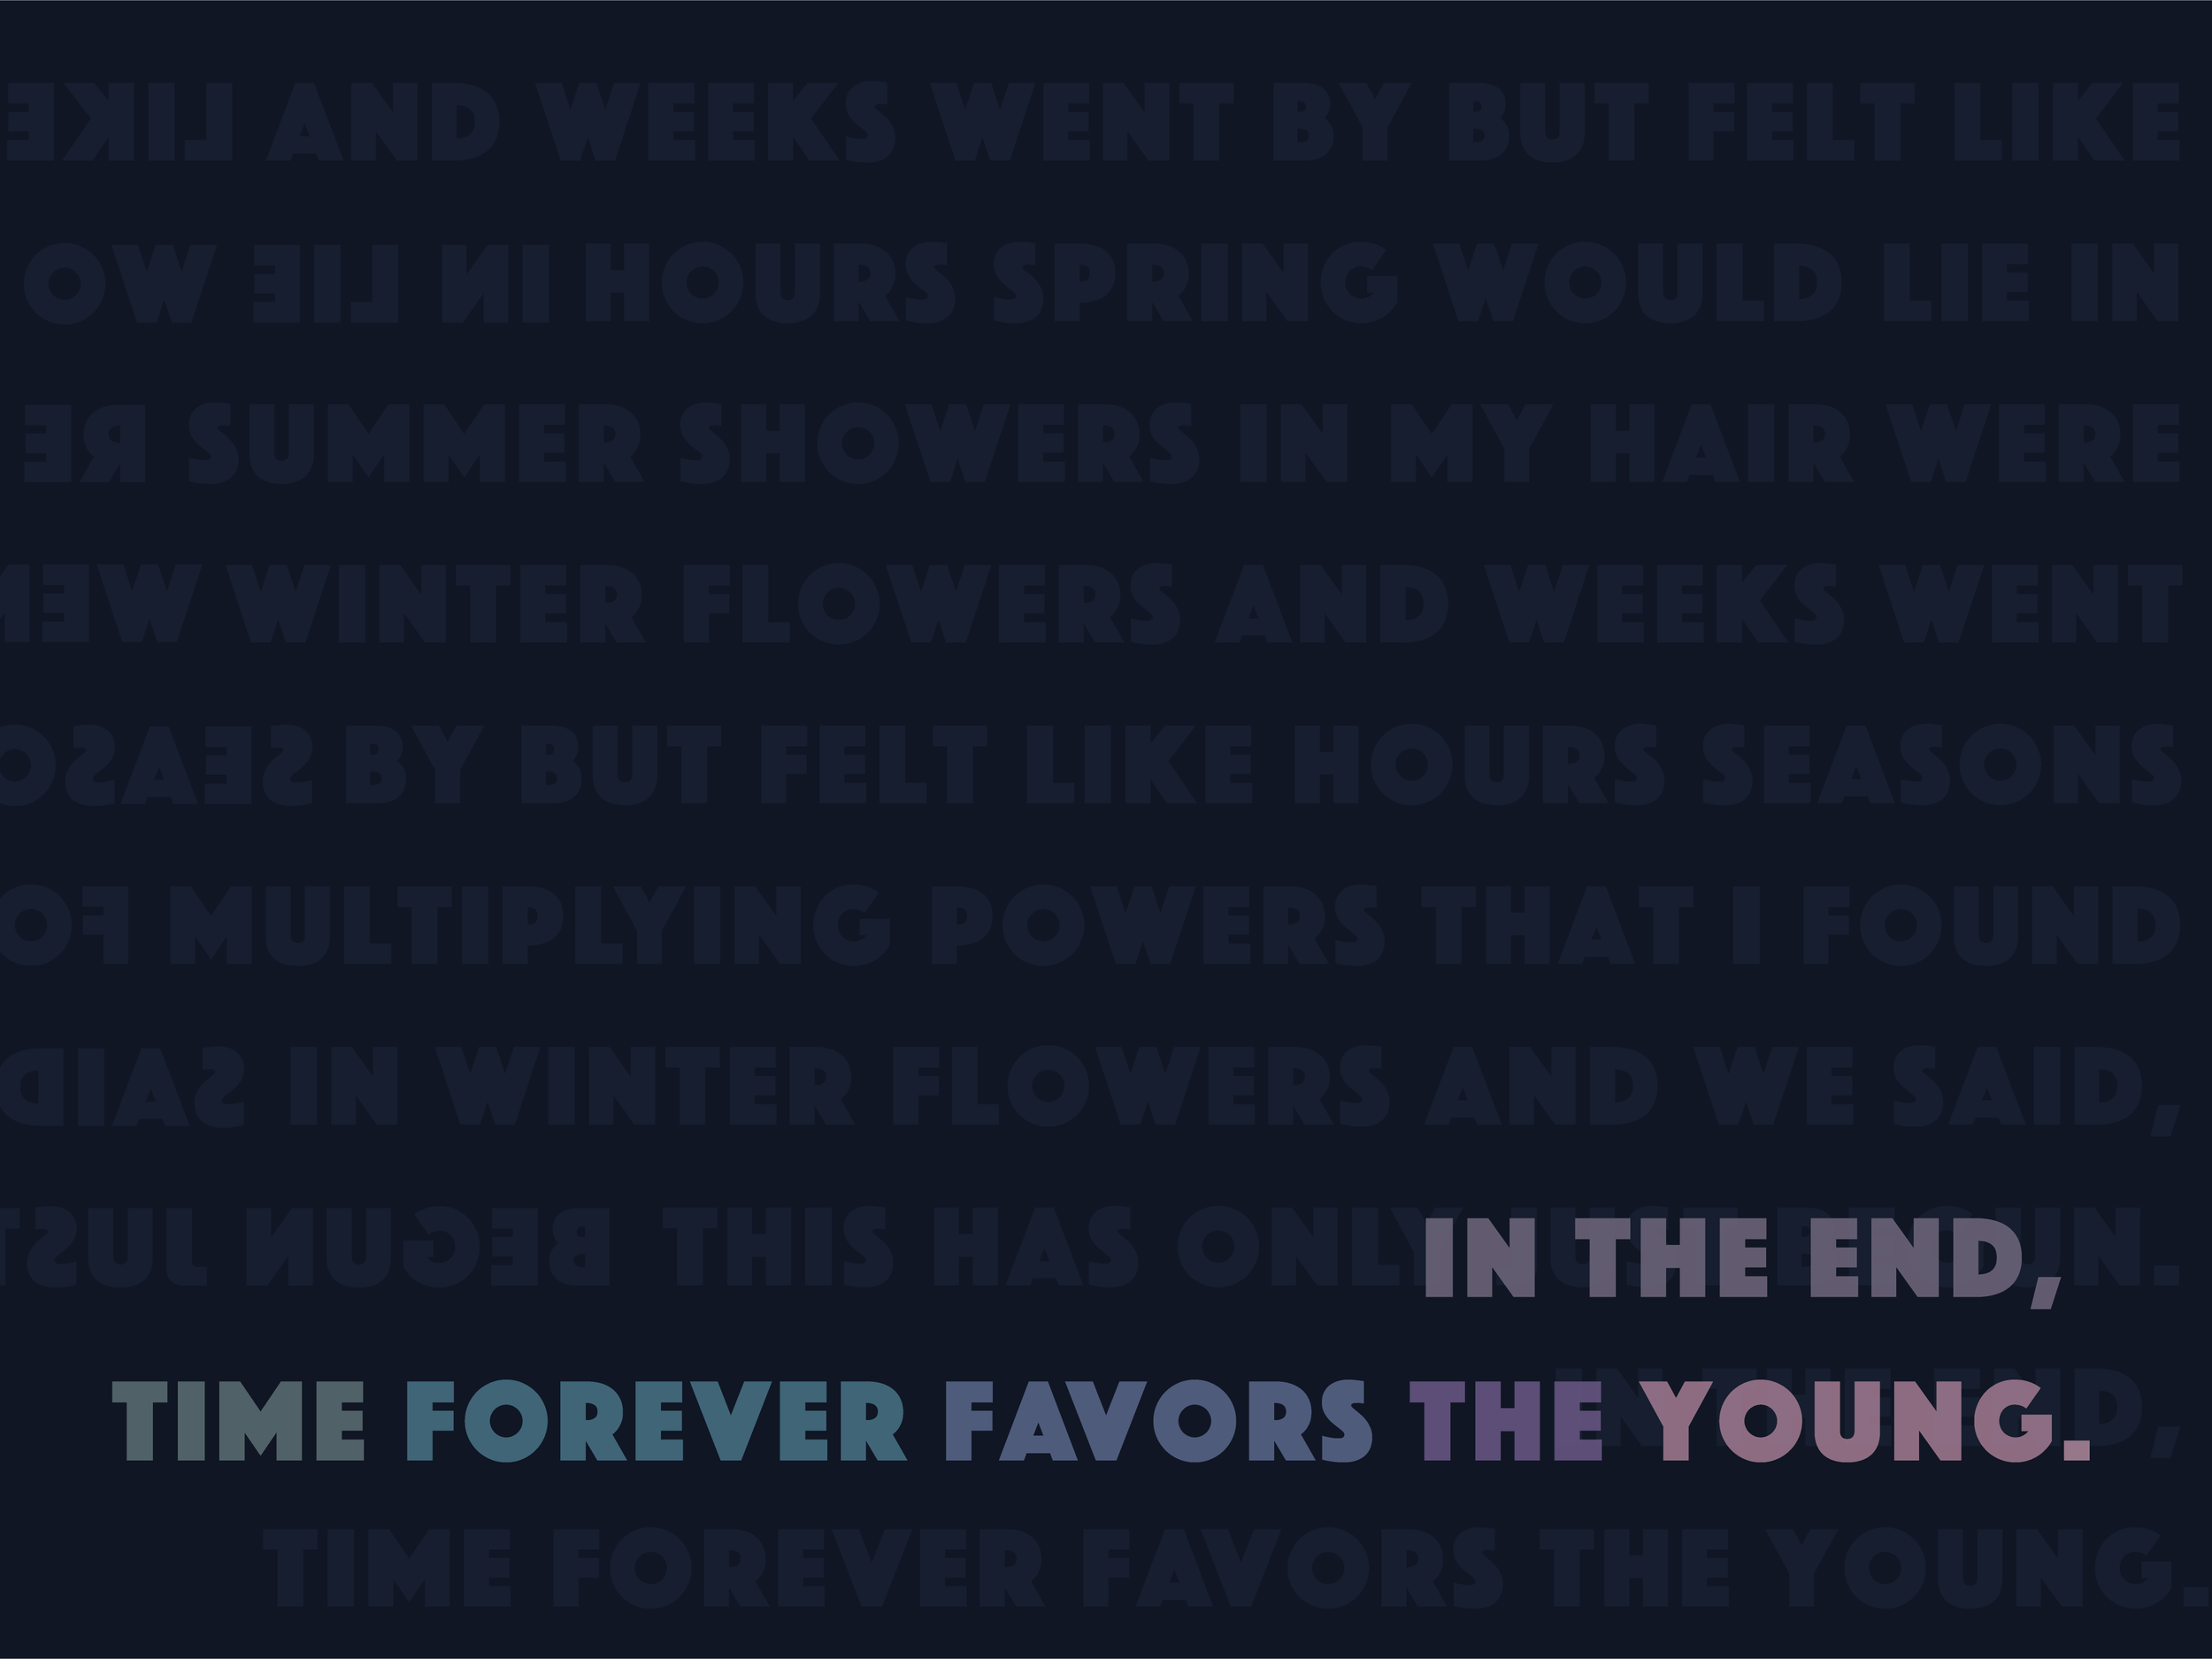 100 days of lyrics_young.png